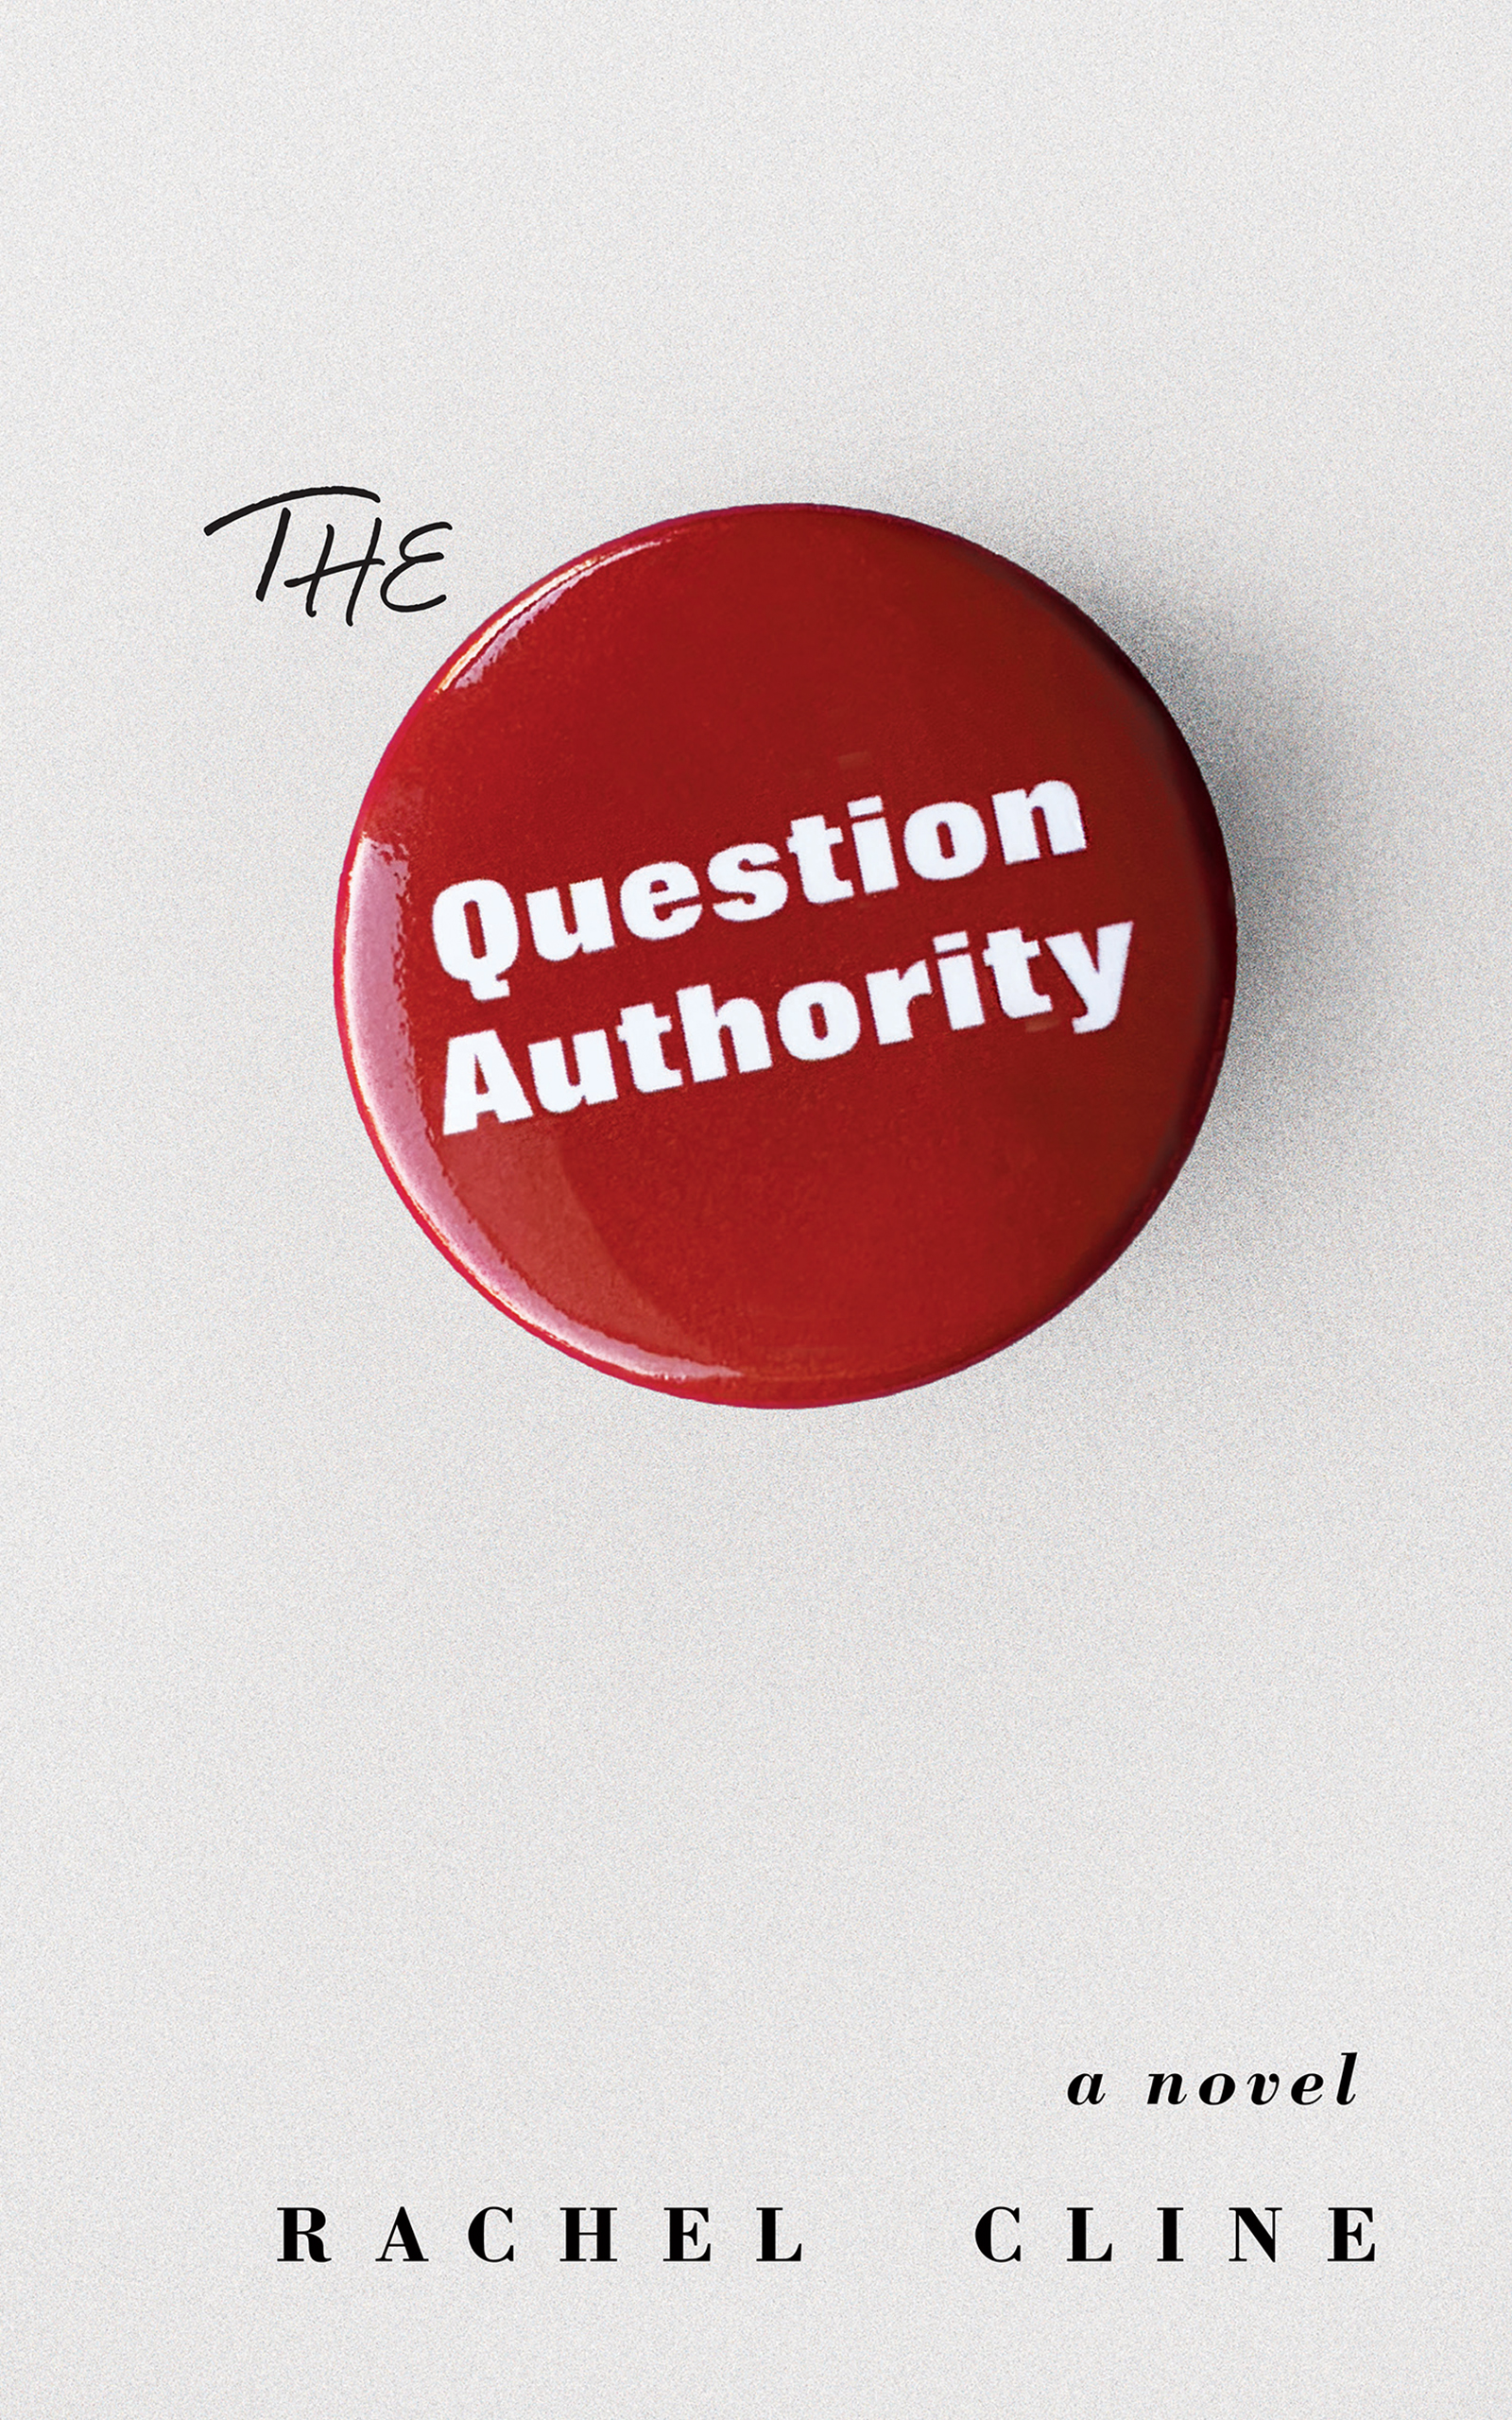 A white background with a red button in the middle with white script on top of it that reads The Question Authority a novel by Rachel Cline.